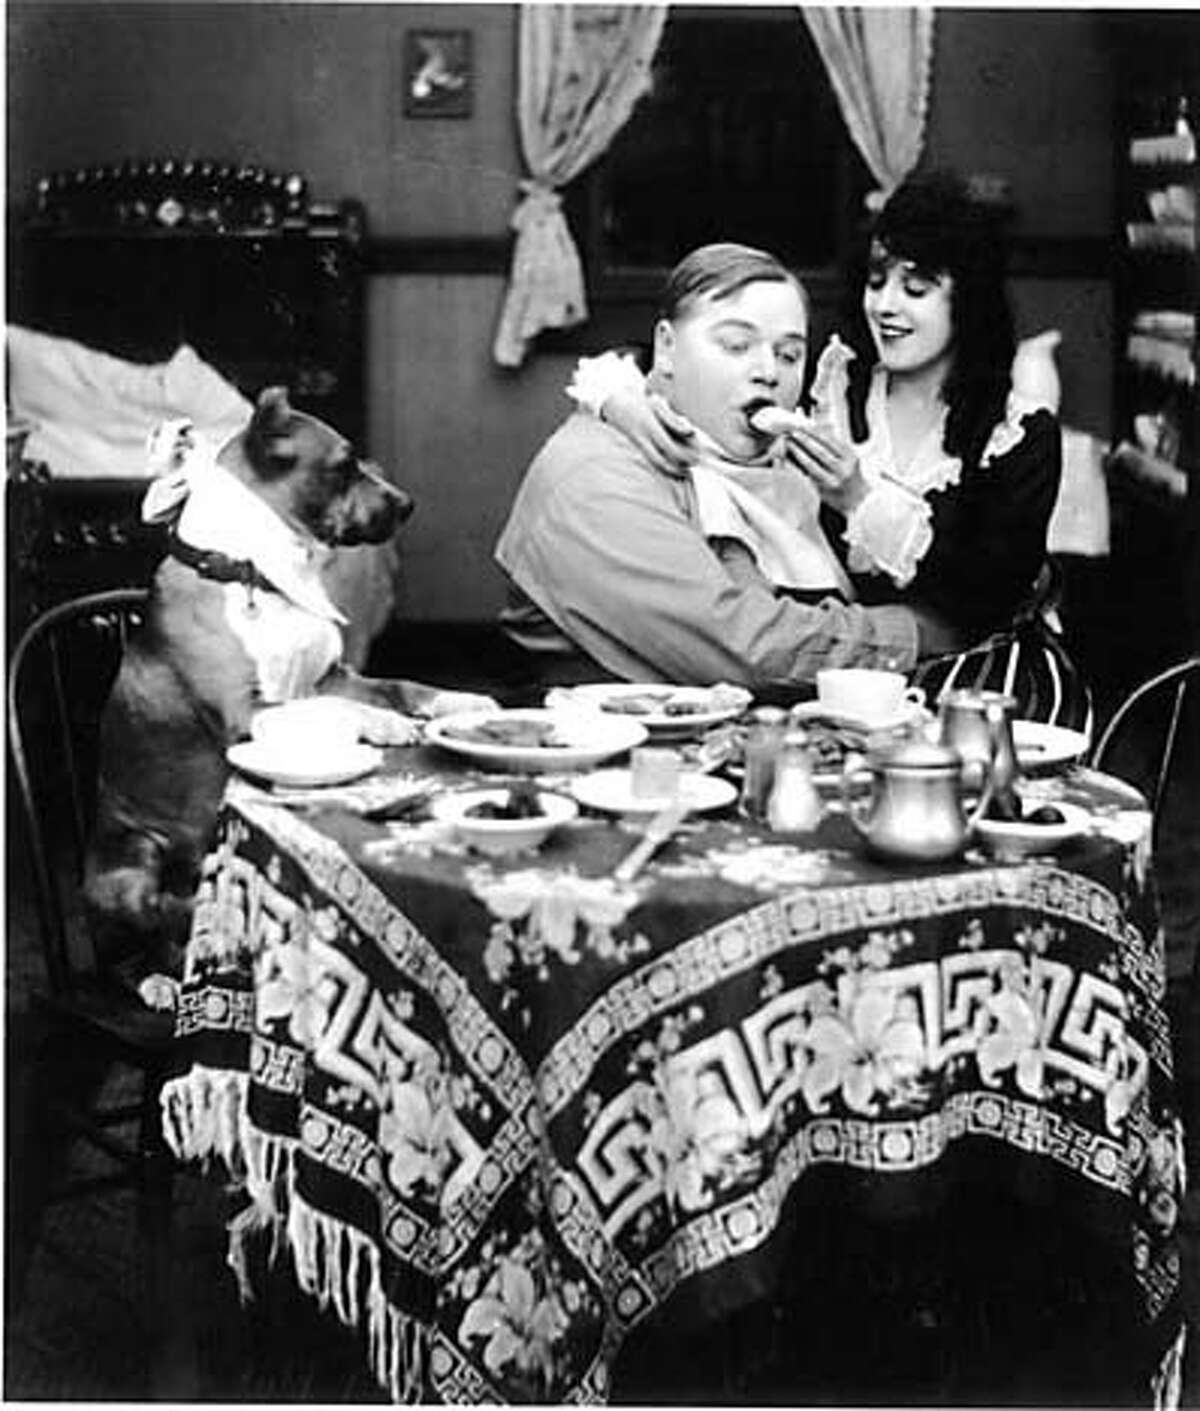 """Fatty Arbuckle and Mabel Normand in the 1916 comedy """"Fatty and Mabel Adrift"""""""